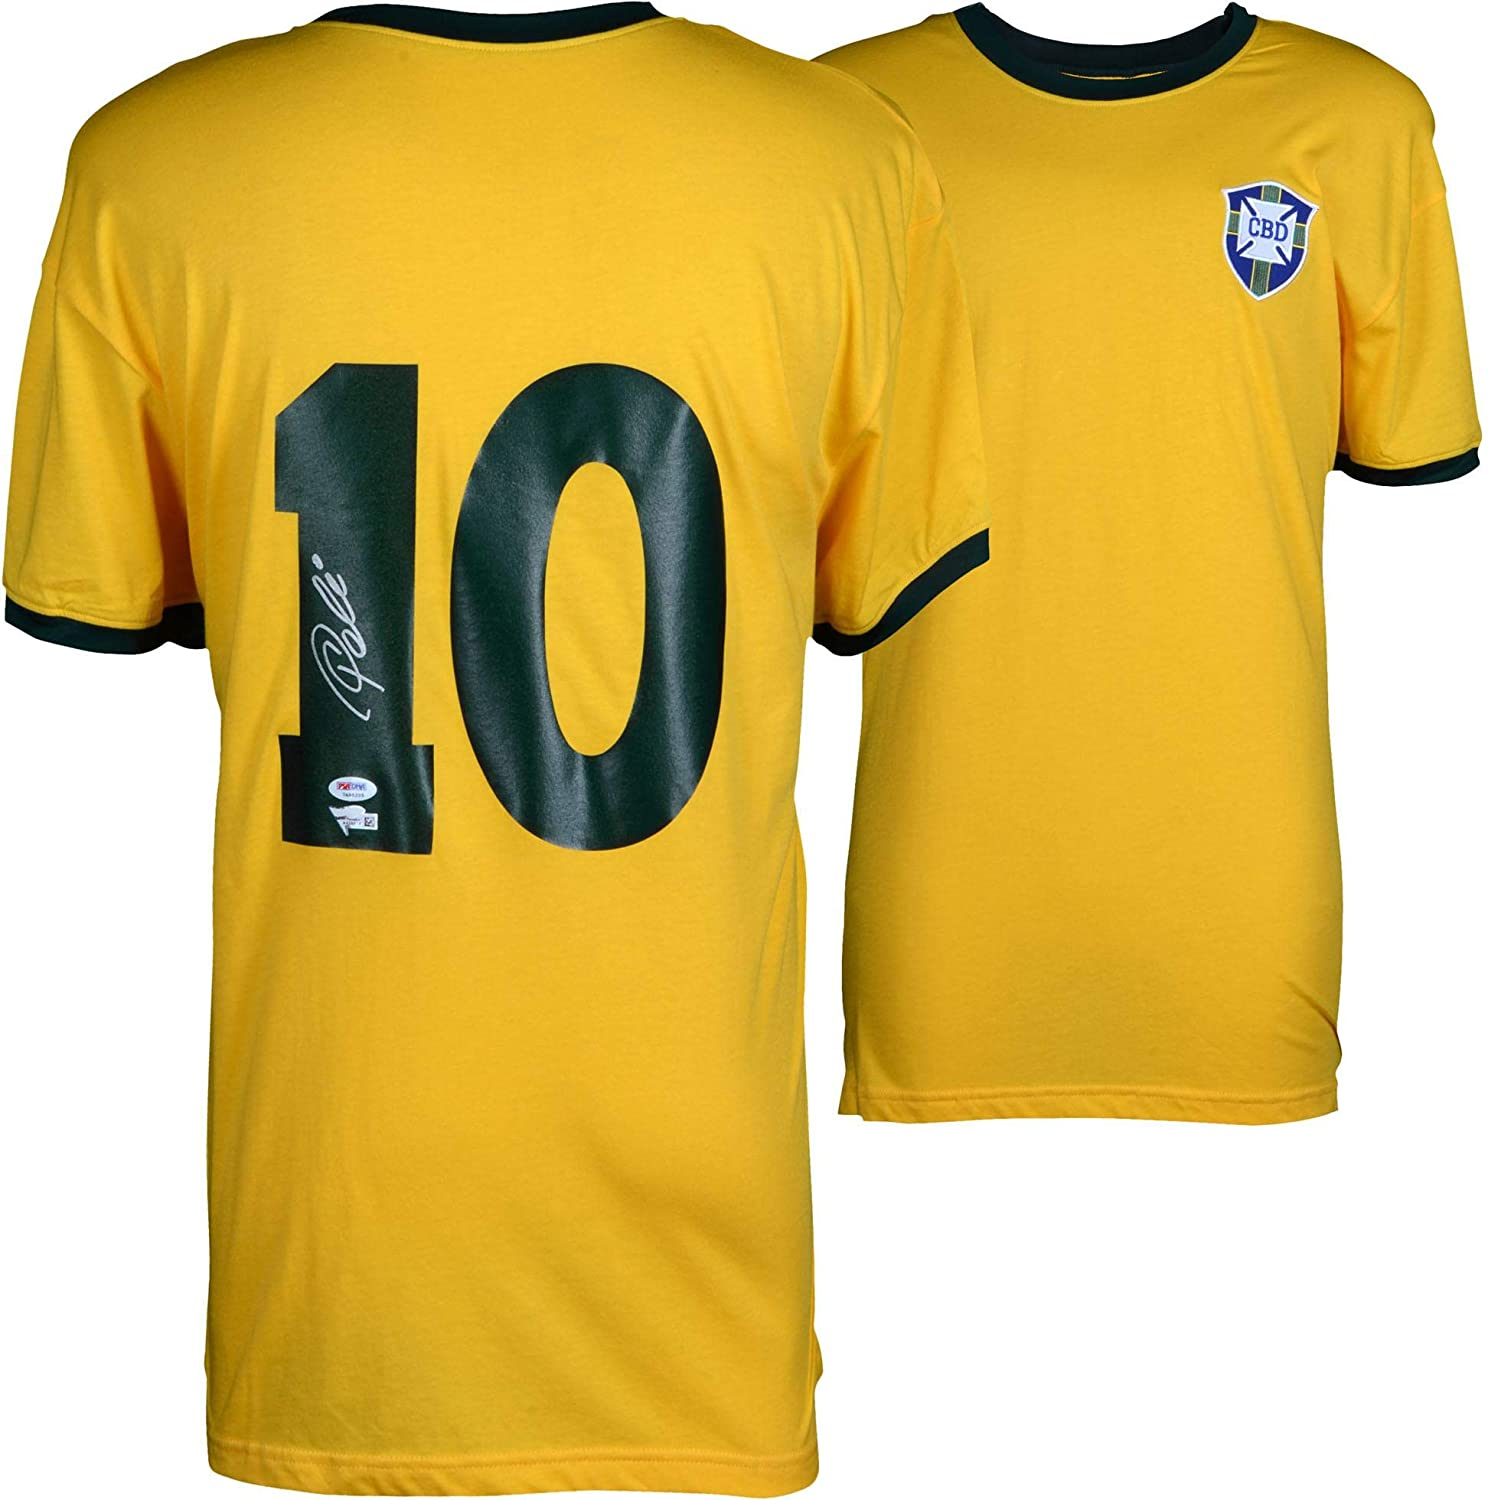 1e77d6897 Pele Brazil Autographed Yellow Jersey - Fanatics Authentic Certified -  Autographed Soccer Jerseys at Amazon s Sports Collectibles Store